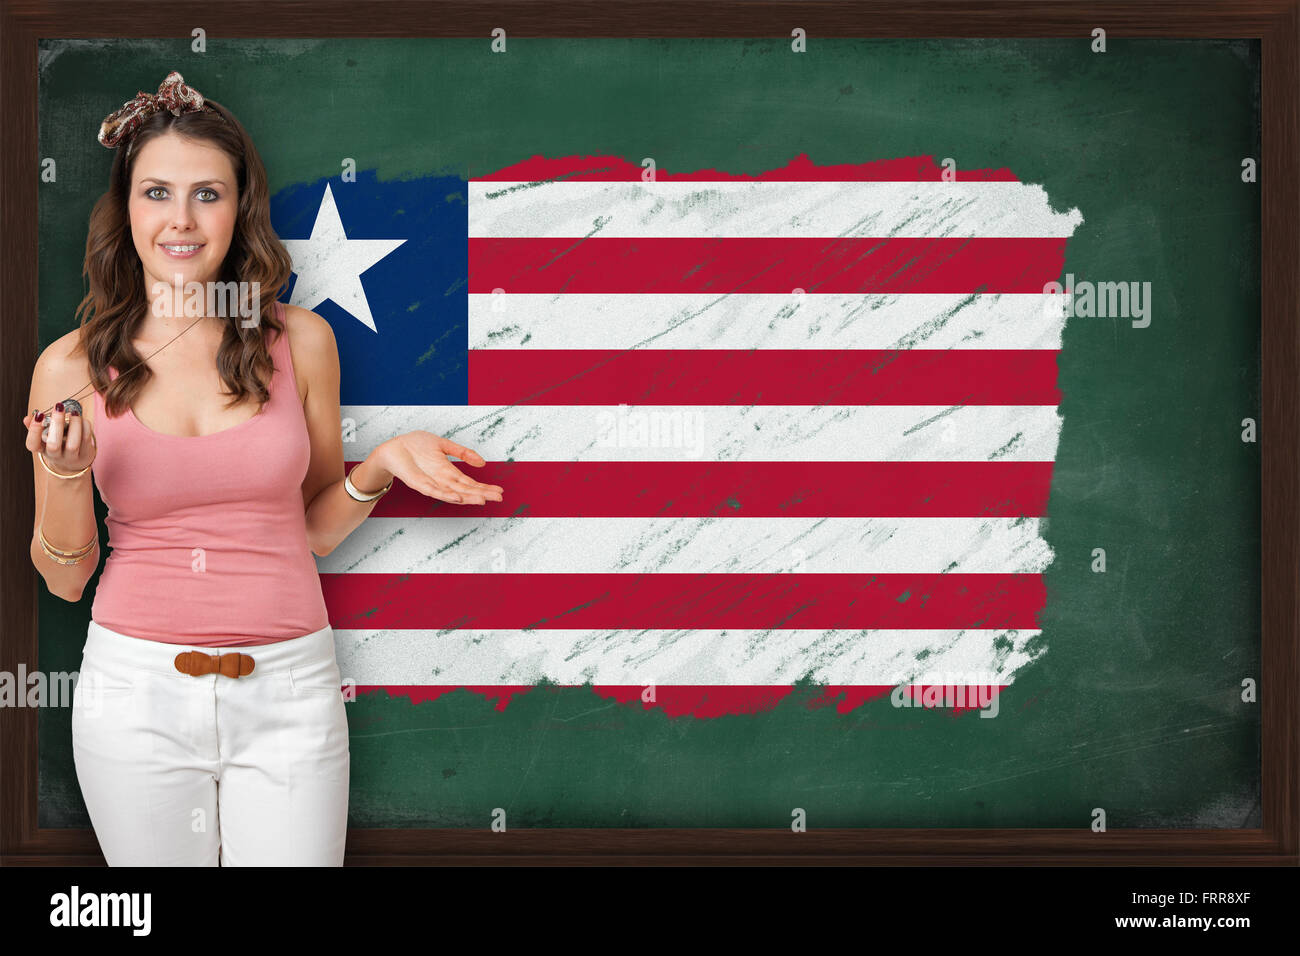 Beautiful and smiling woman showing flag of Liberia on blackboard, presentation for tourism and marketing research - Stock Image